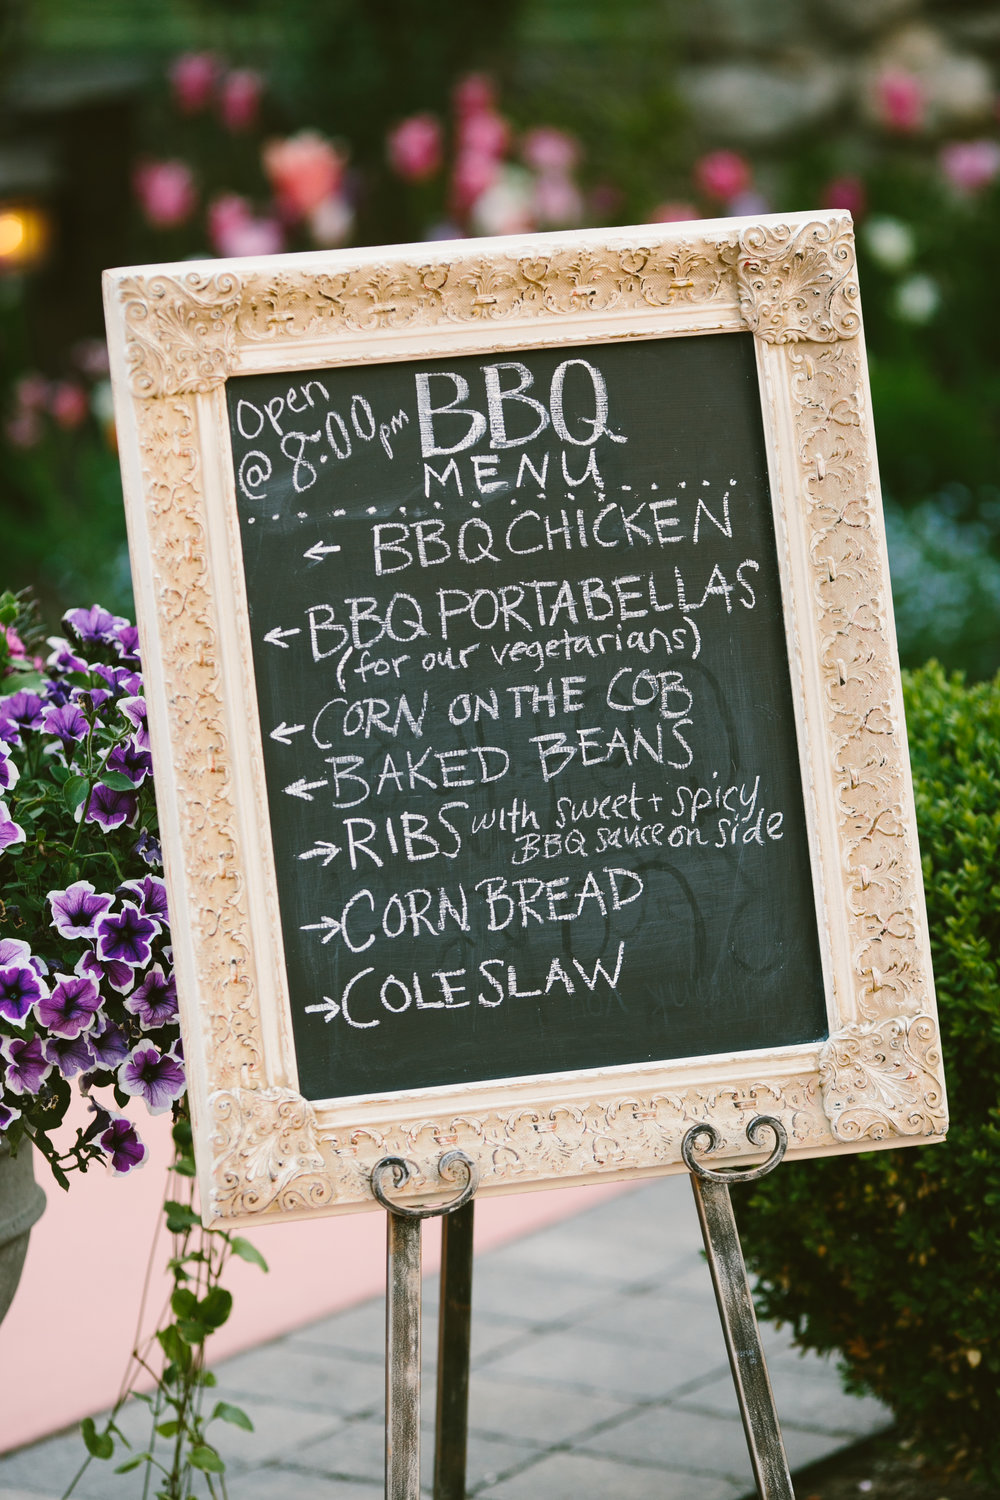 chalkboard-menu-wedding-event-bbq.jpg